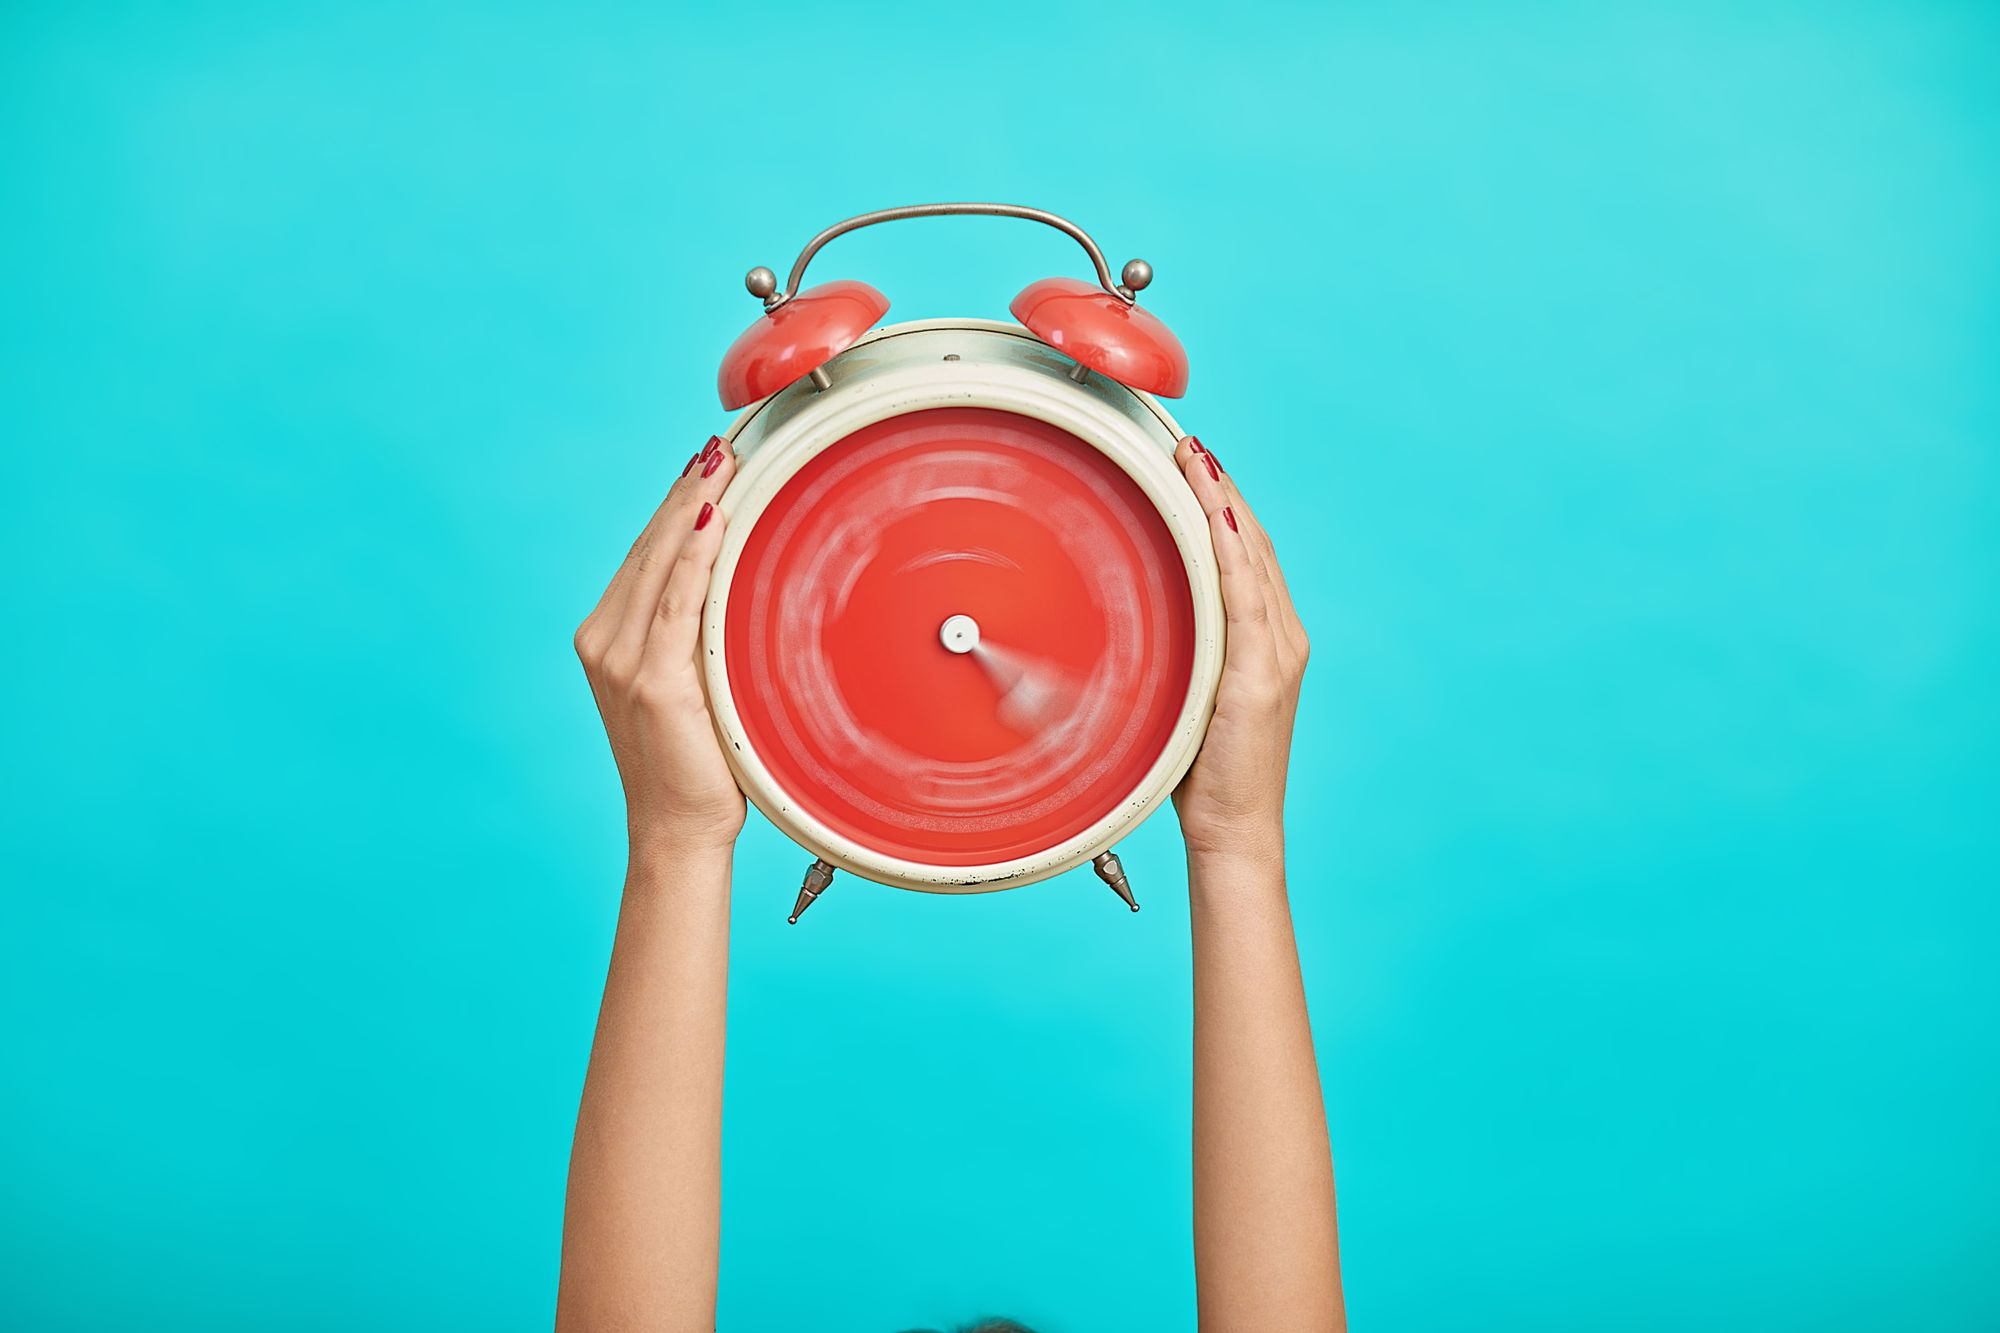 5 Productive Ways to Spend Your Time When Business Slows